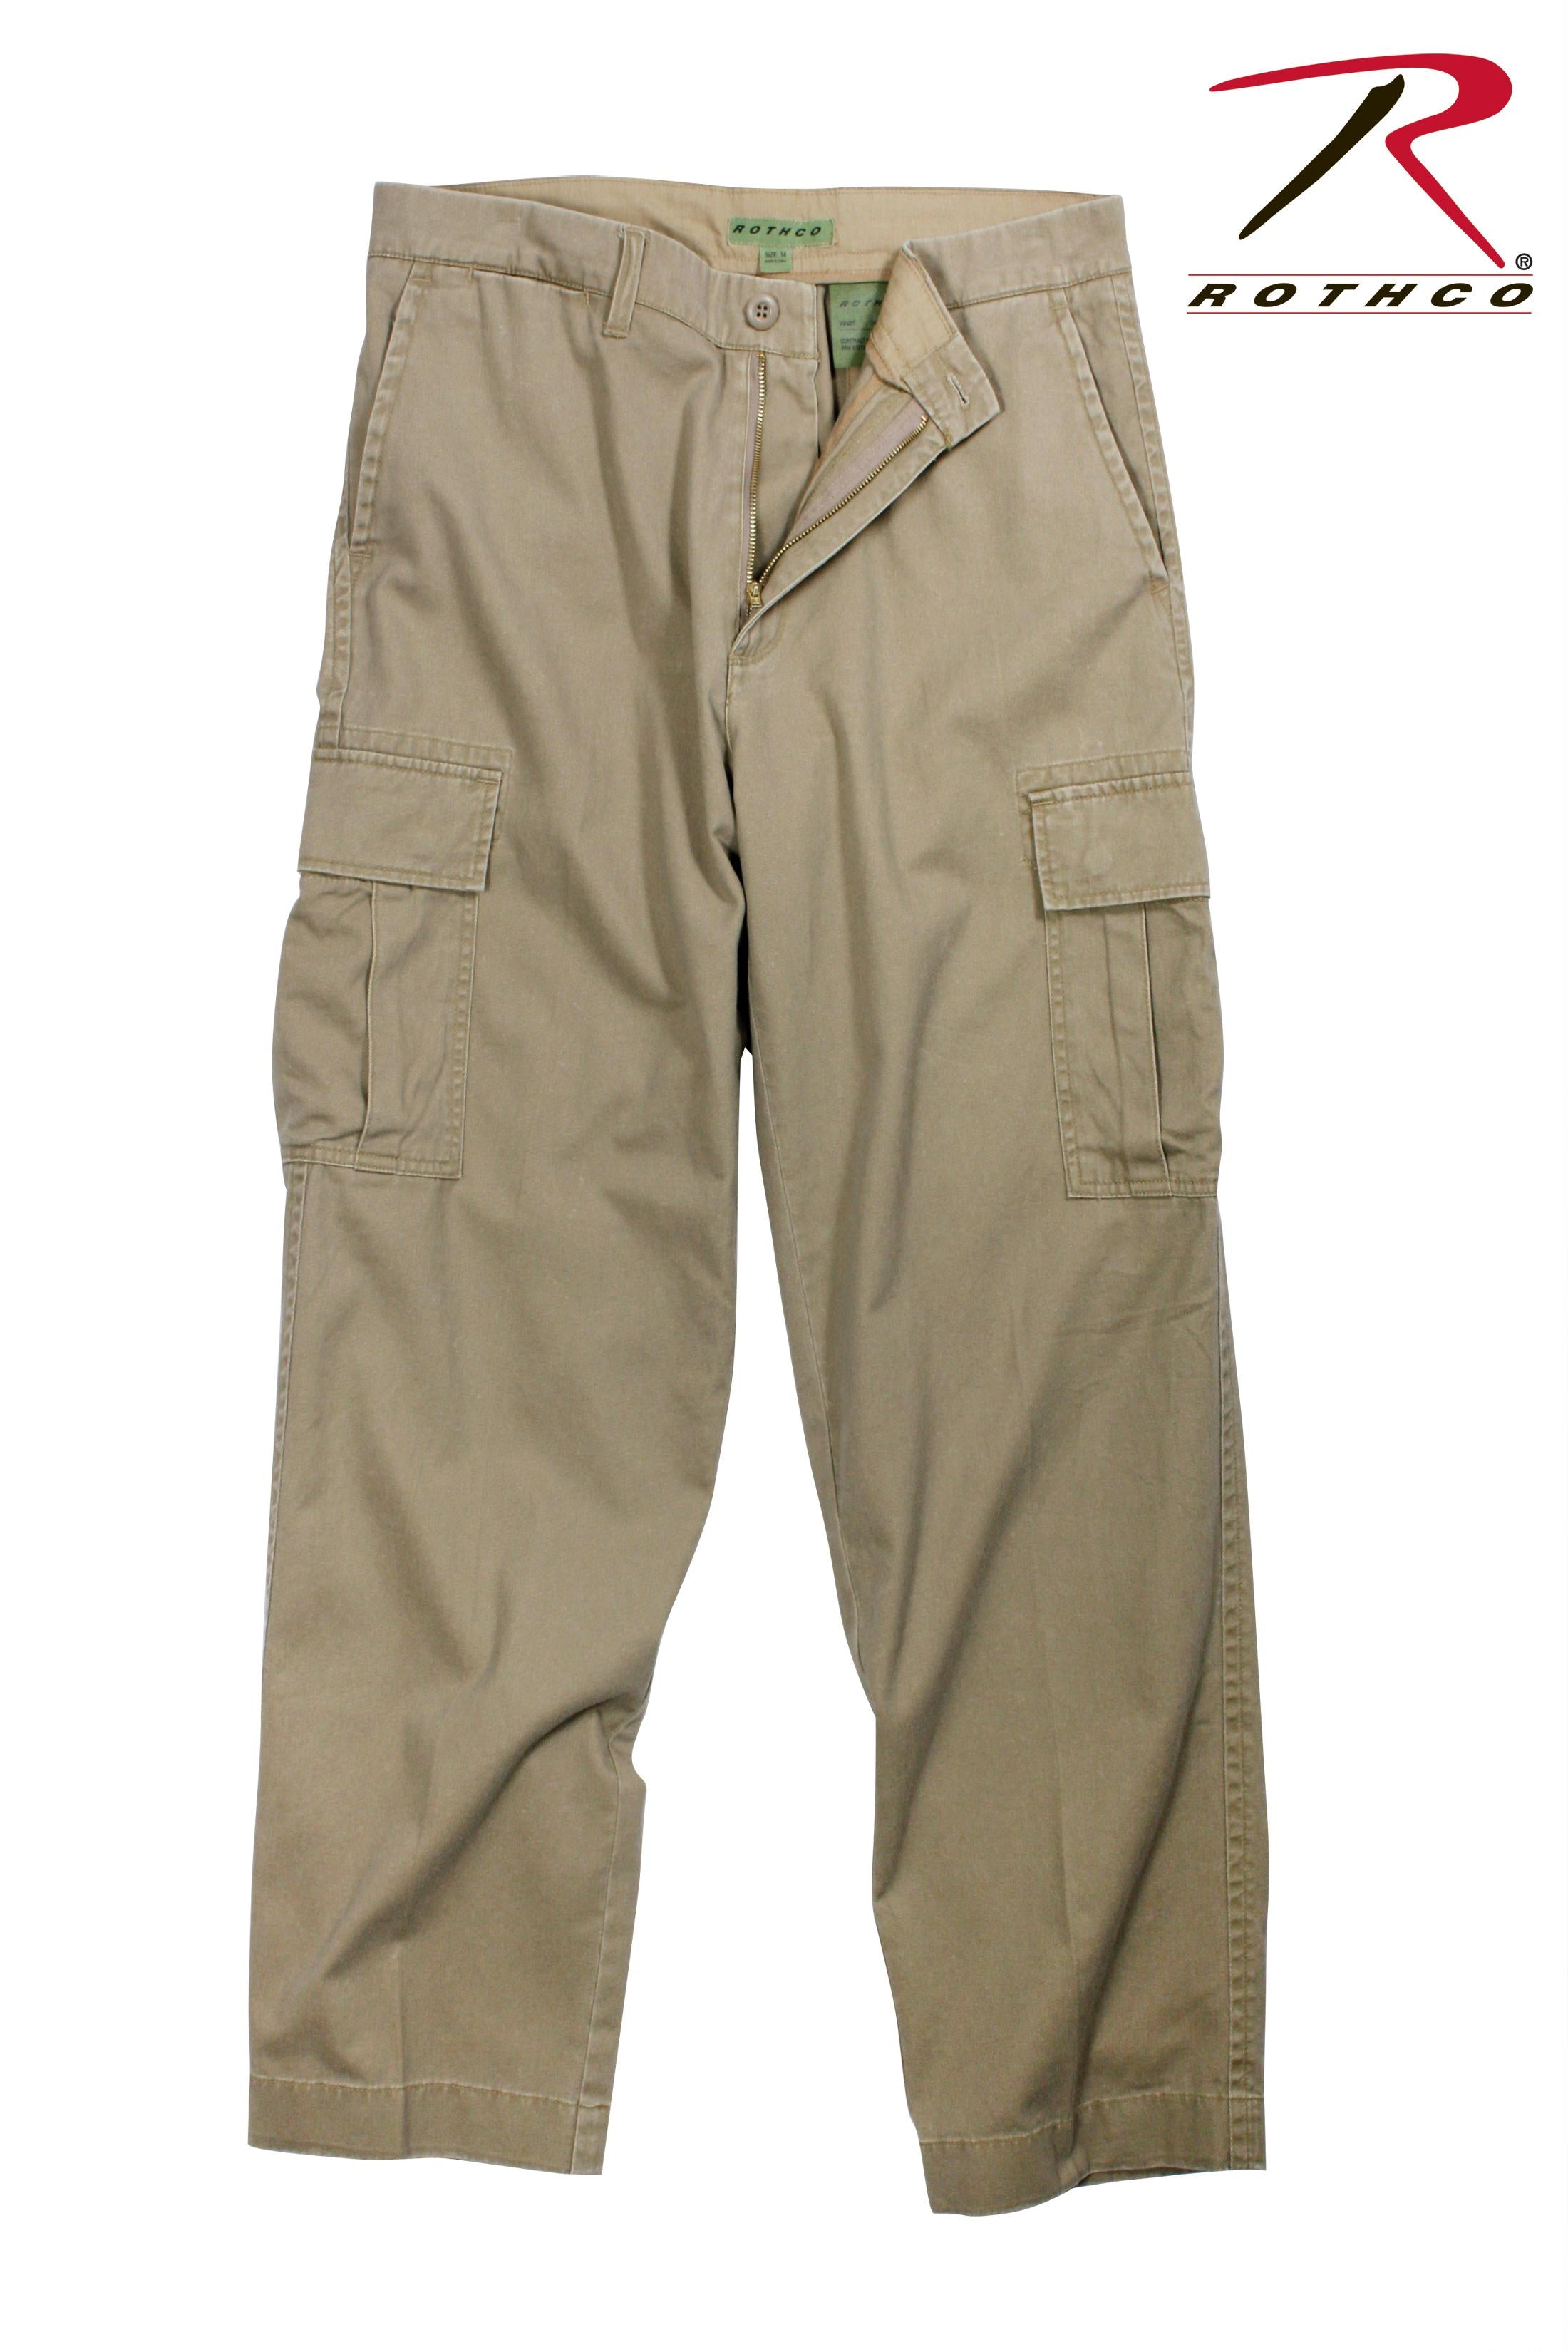 Rothco Vintage 6-Pocket Flat Front Fatigue Pants - Khaki / 42